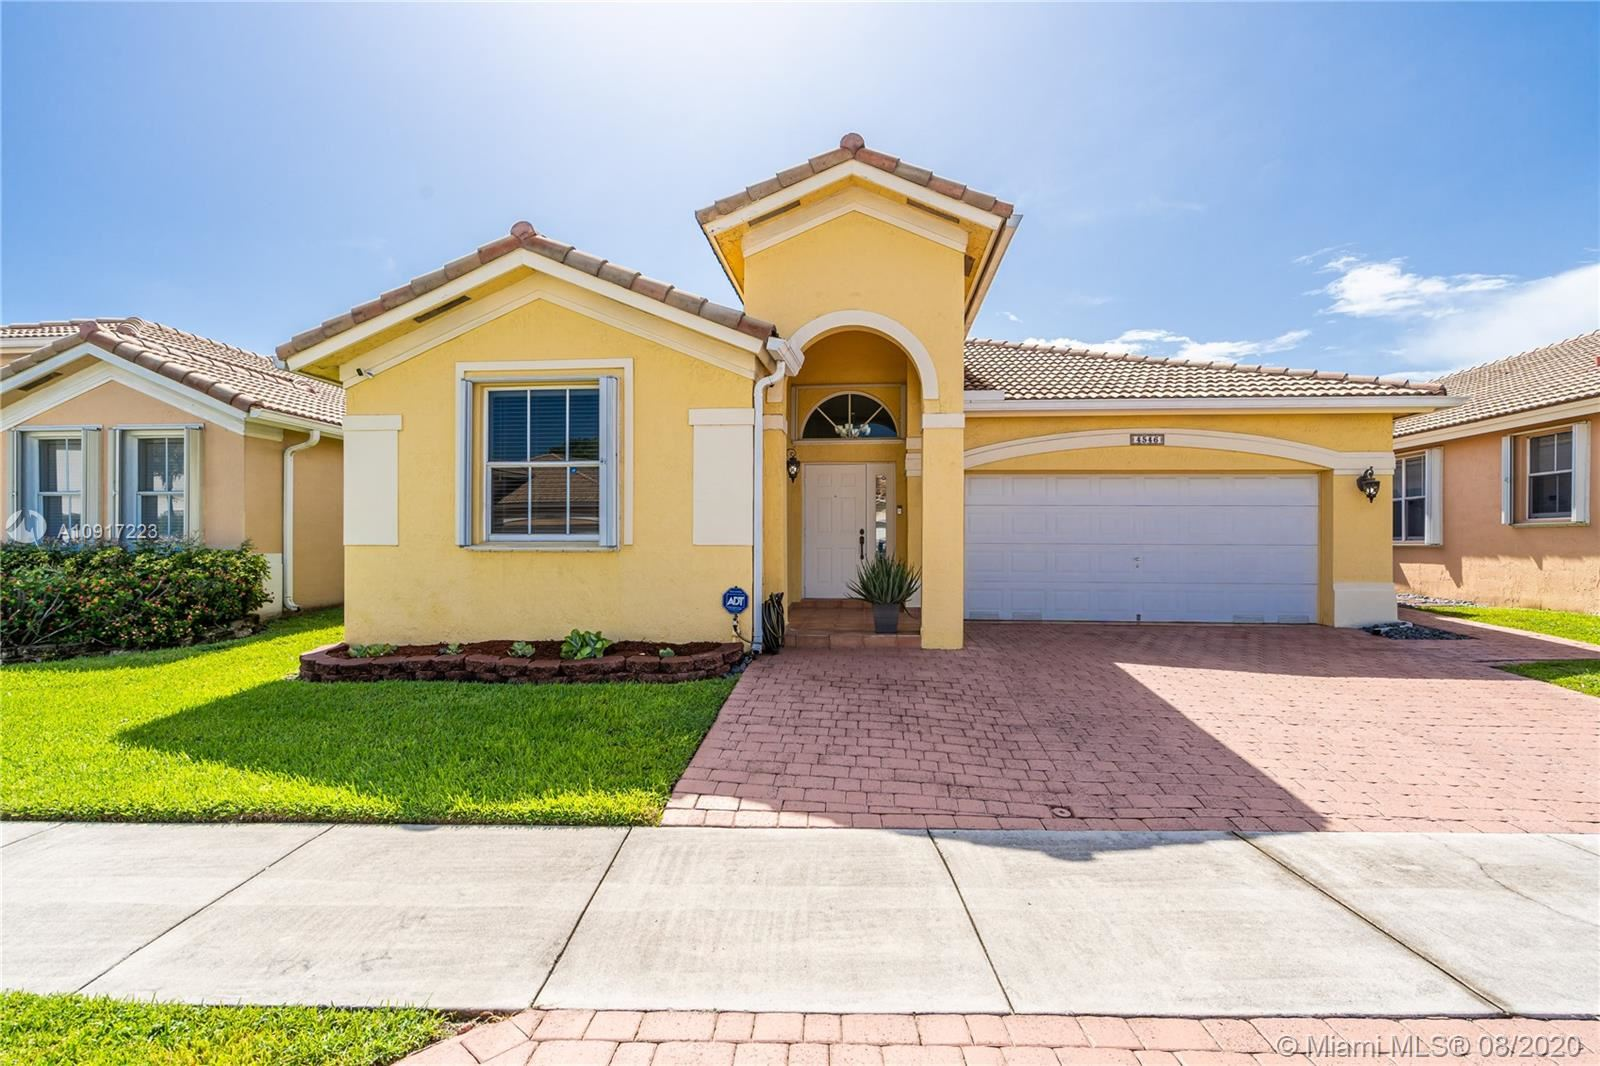 4546 NW 95th Ave, Doral, FL 33178 - #: A10917223